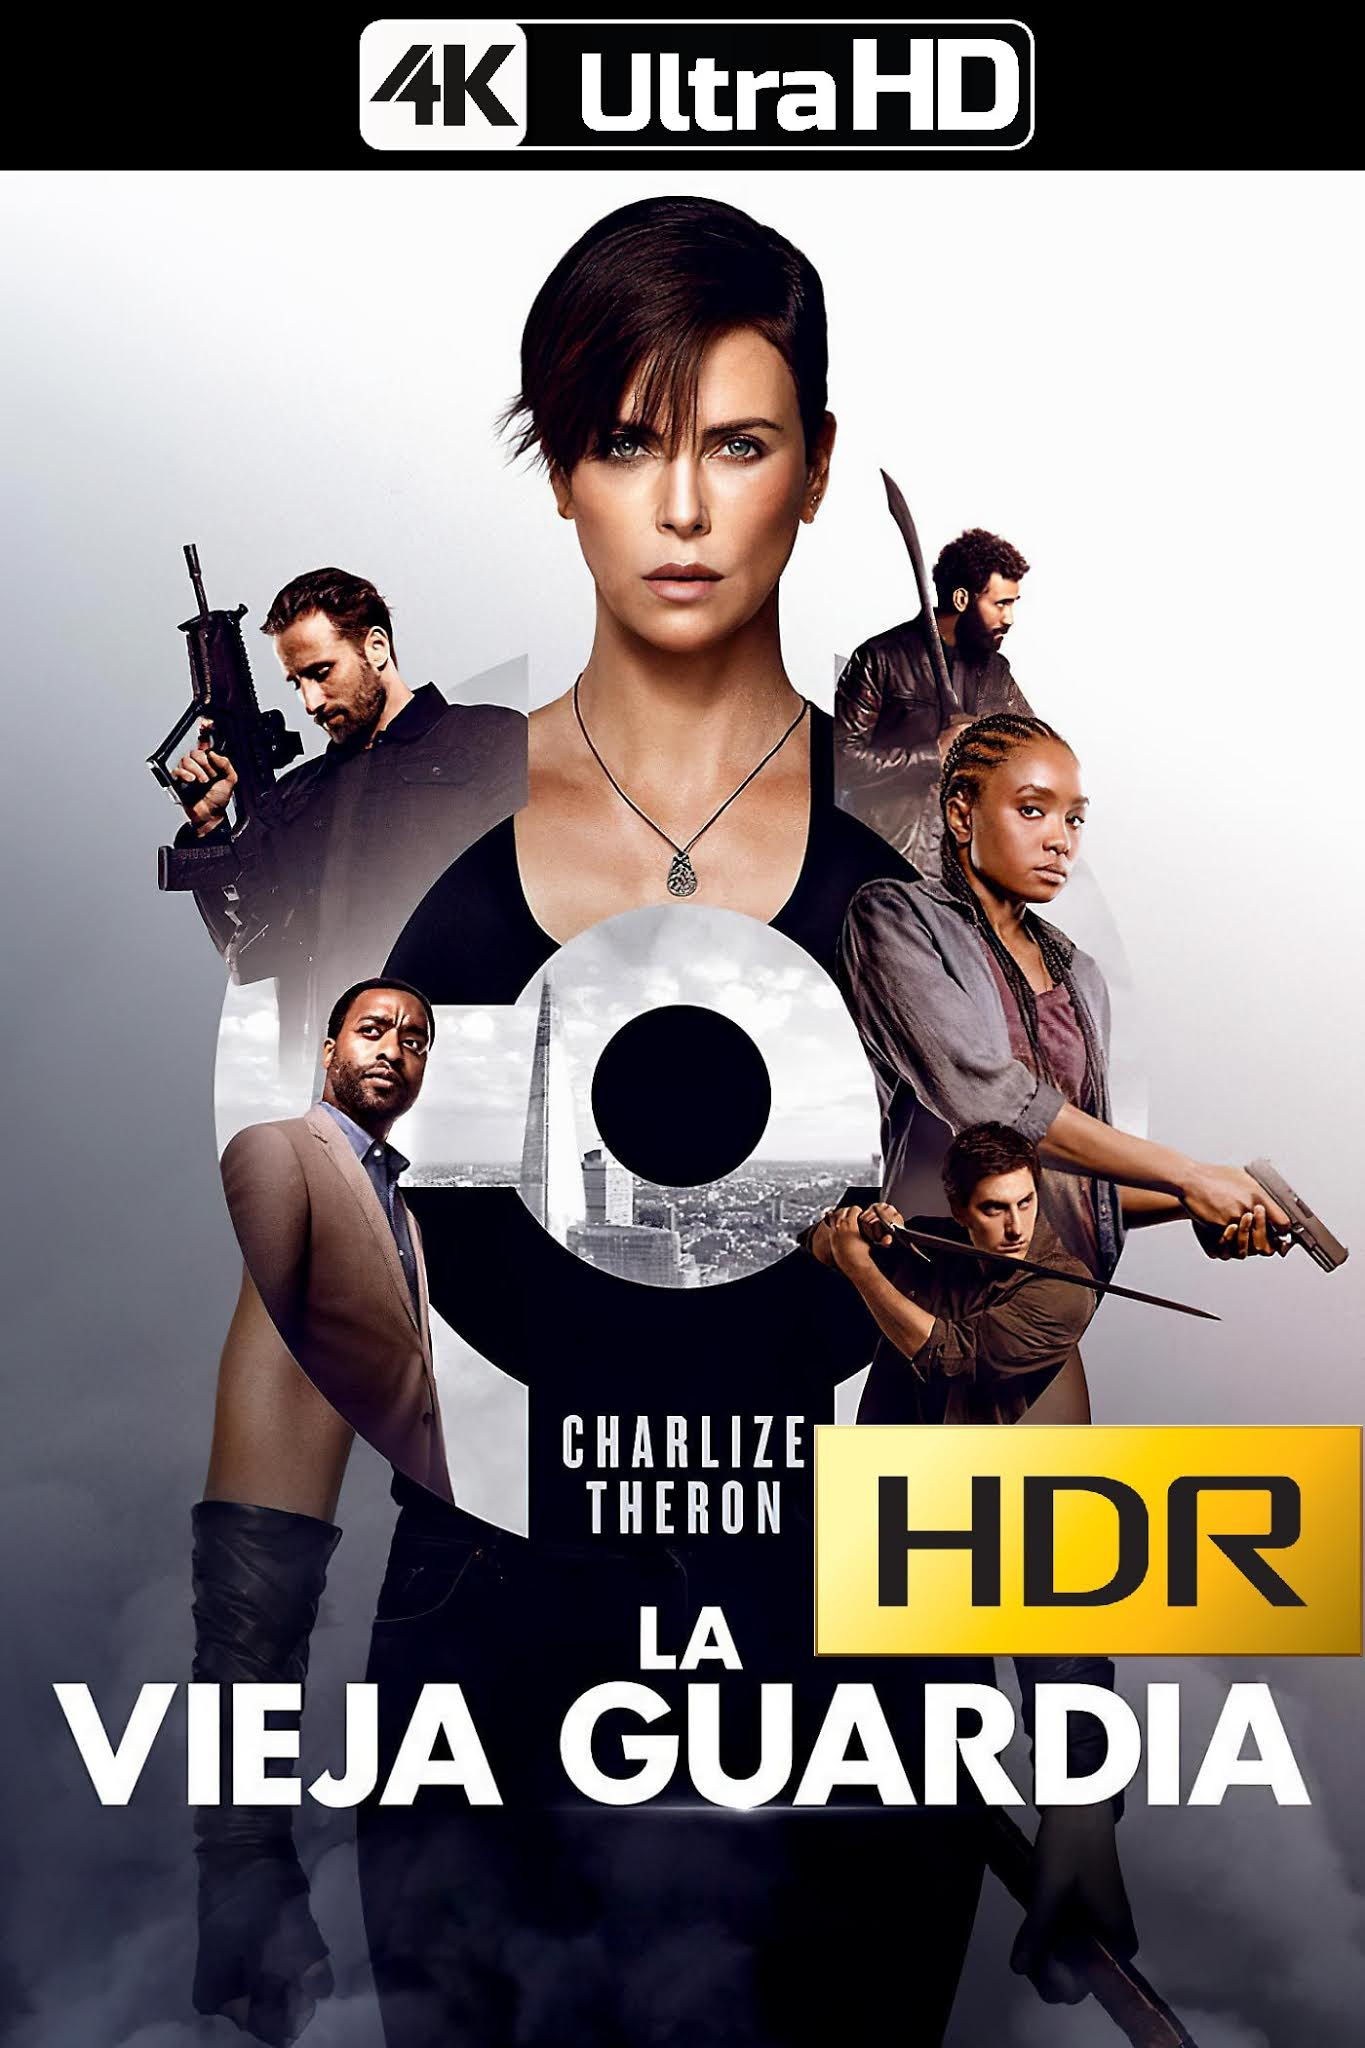 La Vieja Guardia (2020) 4K UHD HDR Web-DL Latino